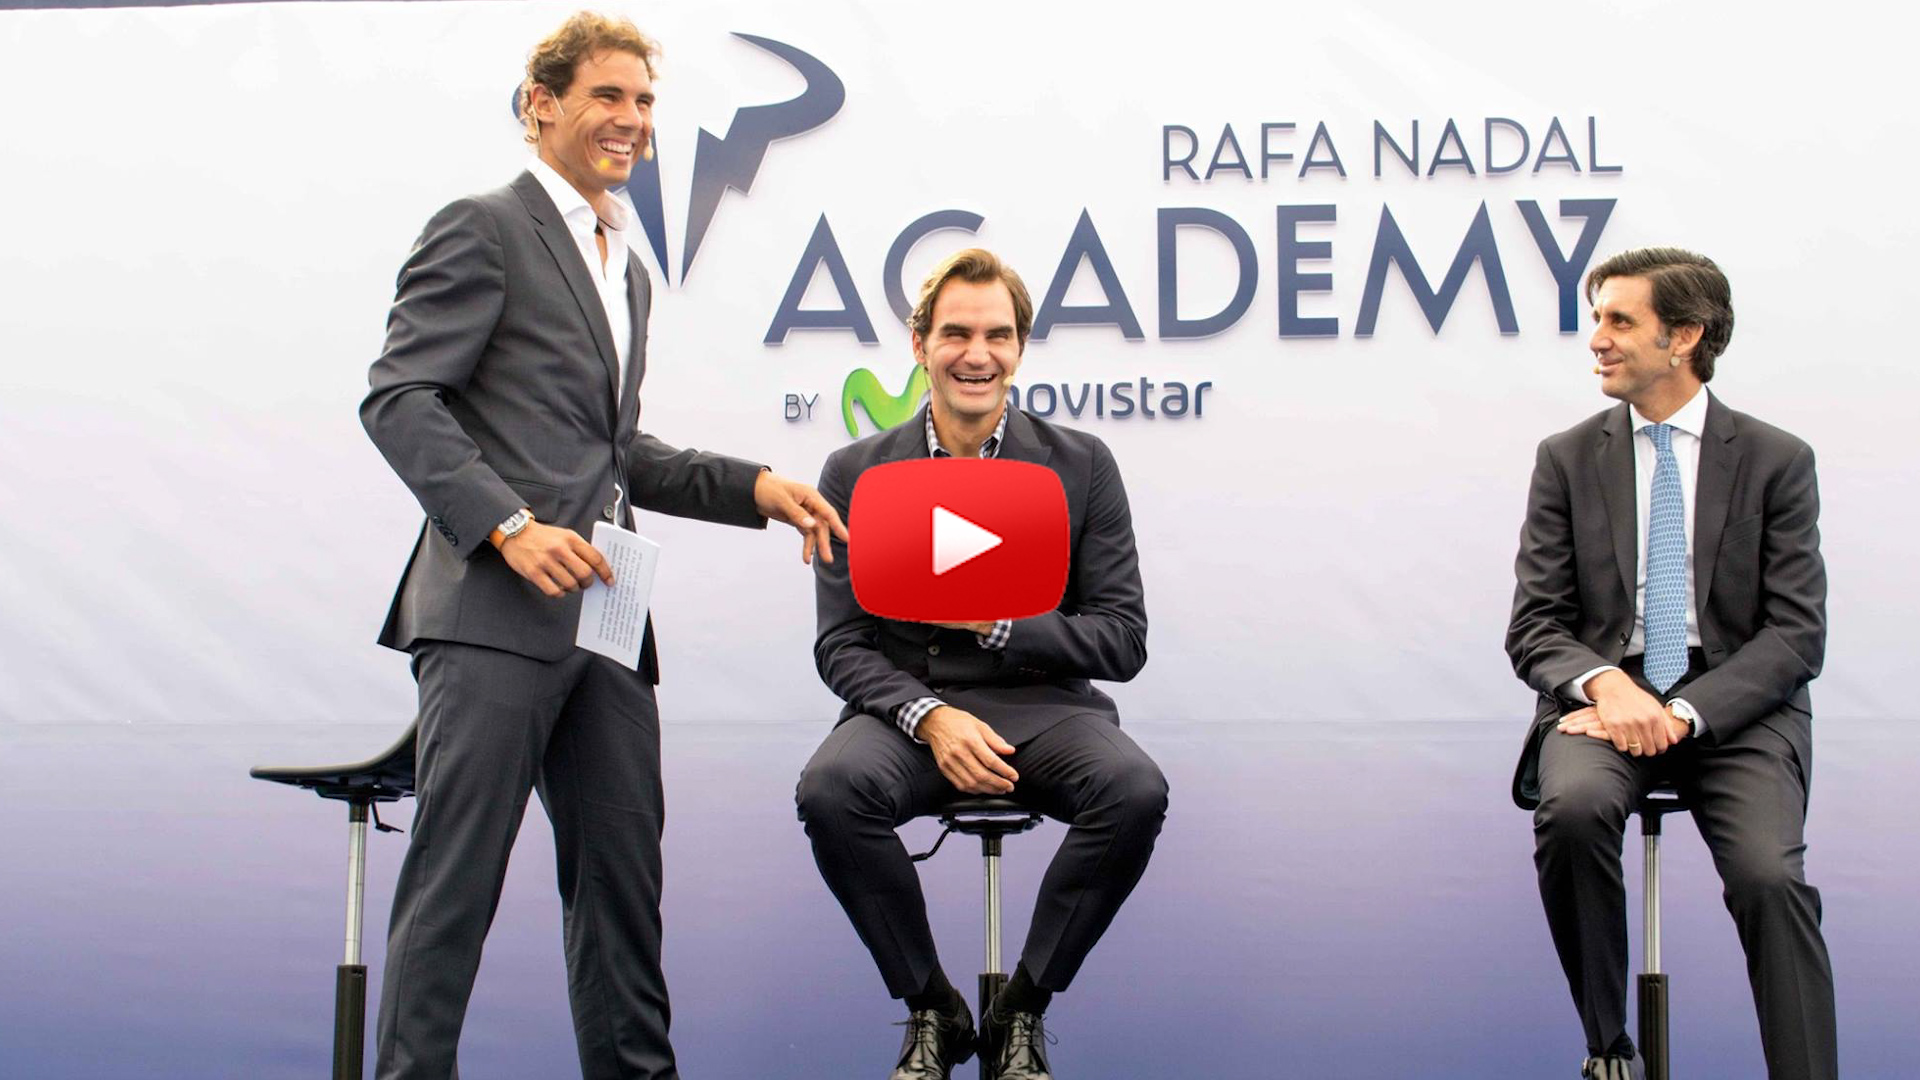 Roger Federer and Rafael Nadal Reunite for Nadal's New Academy